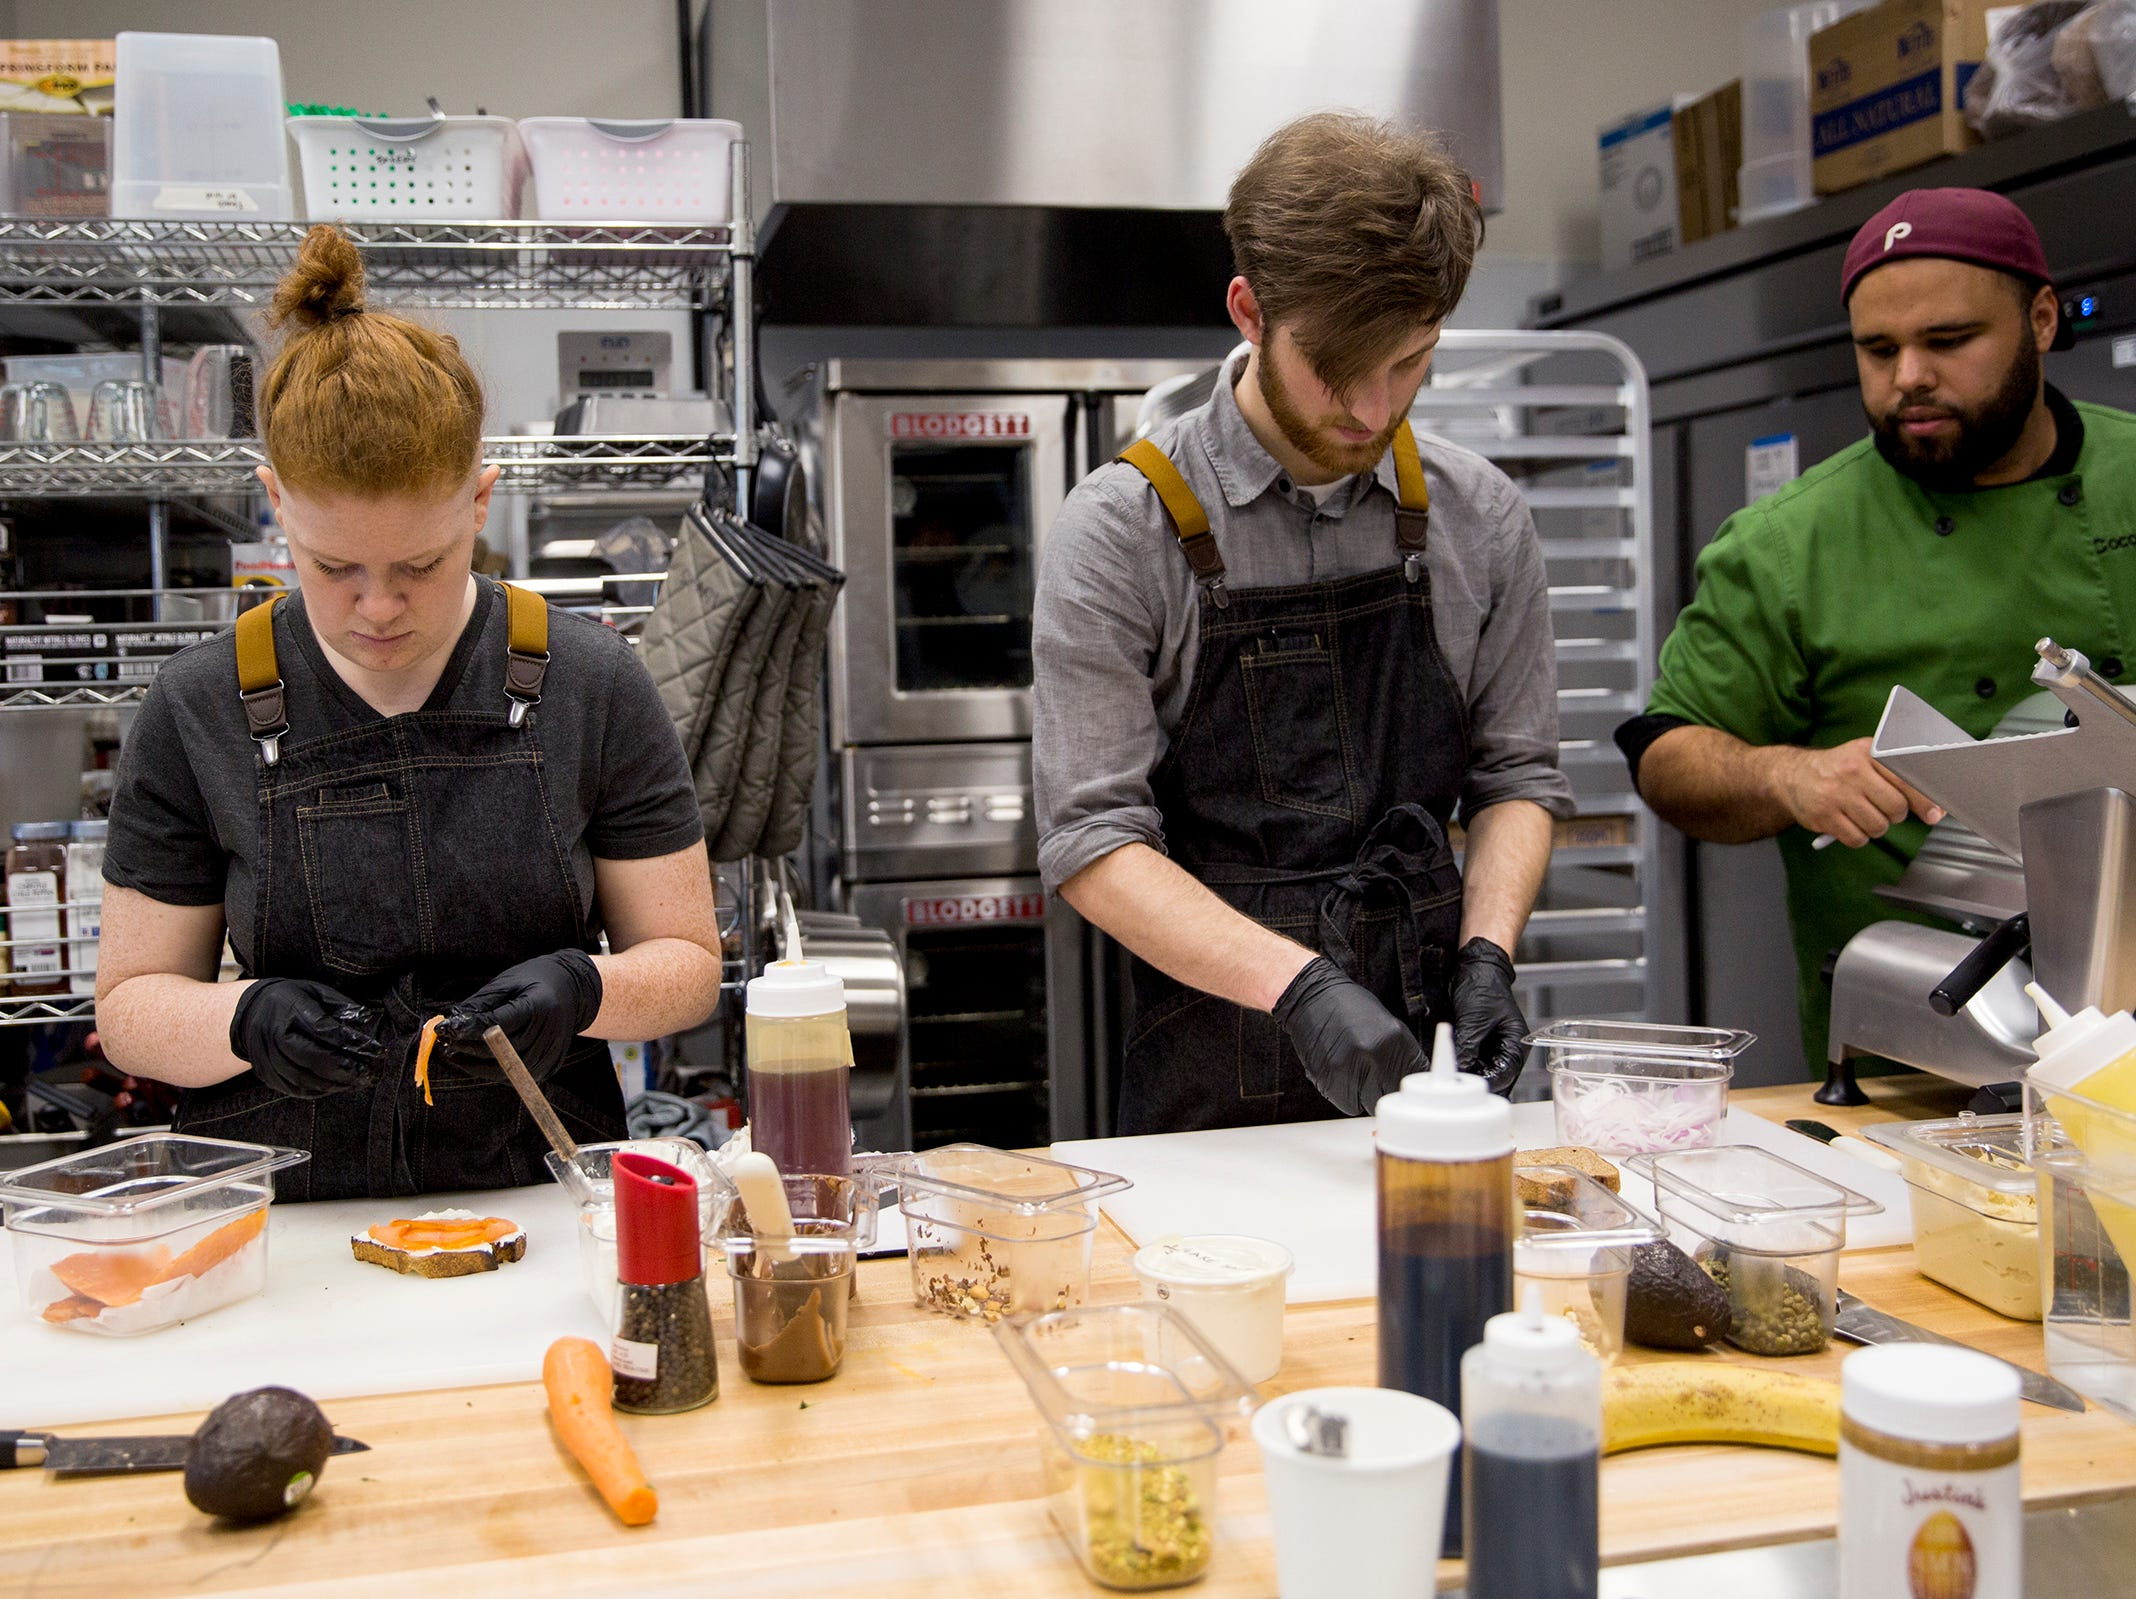 Employees train to make specialty toast at Isaac's Downtown in Salem on Thursday, Jan. 3, 2019.